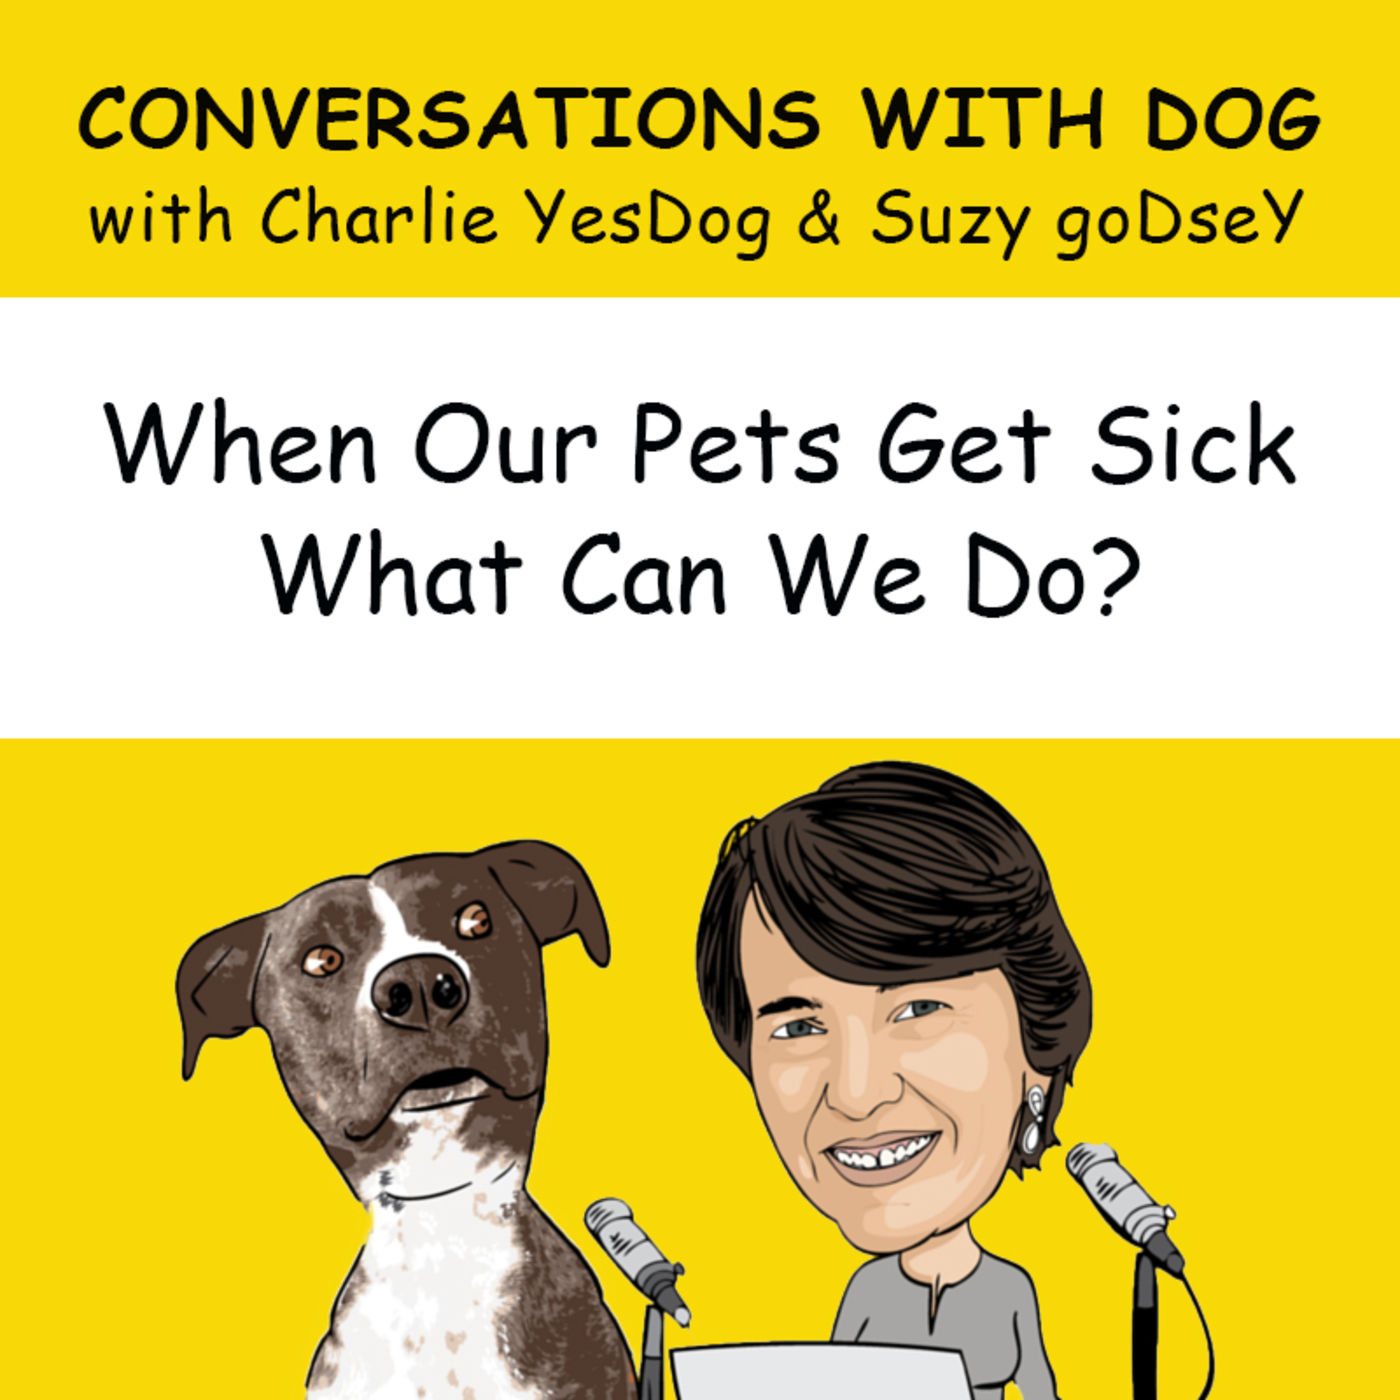 When Our Pets Get Sick, What Can We Do?